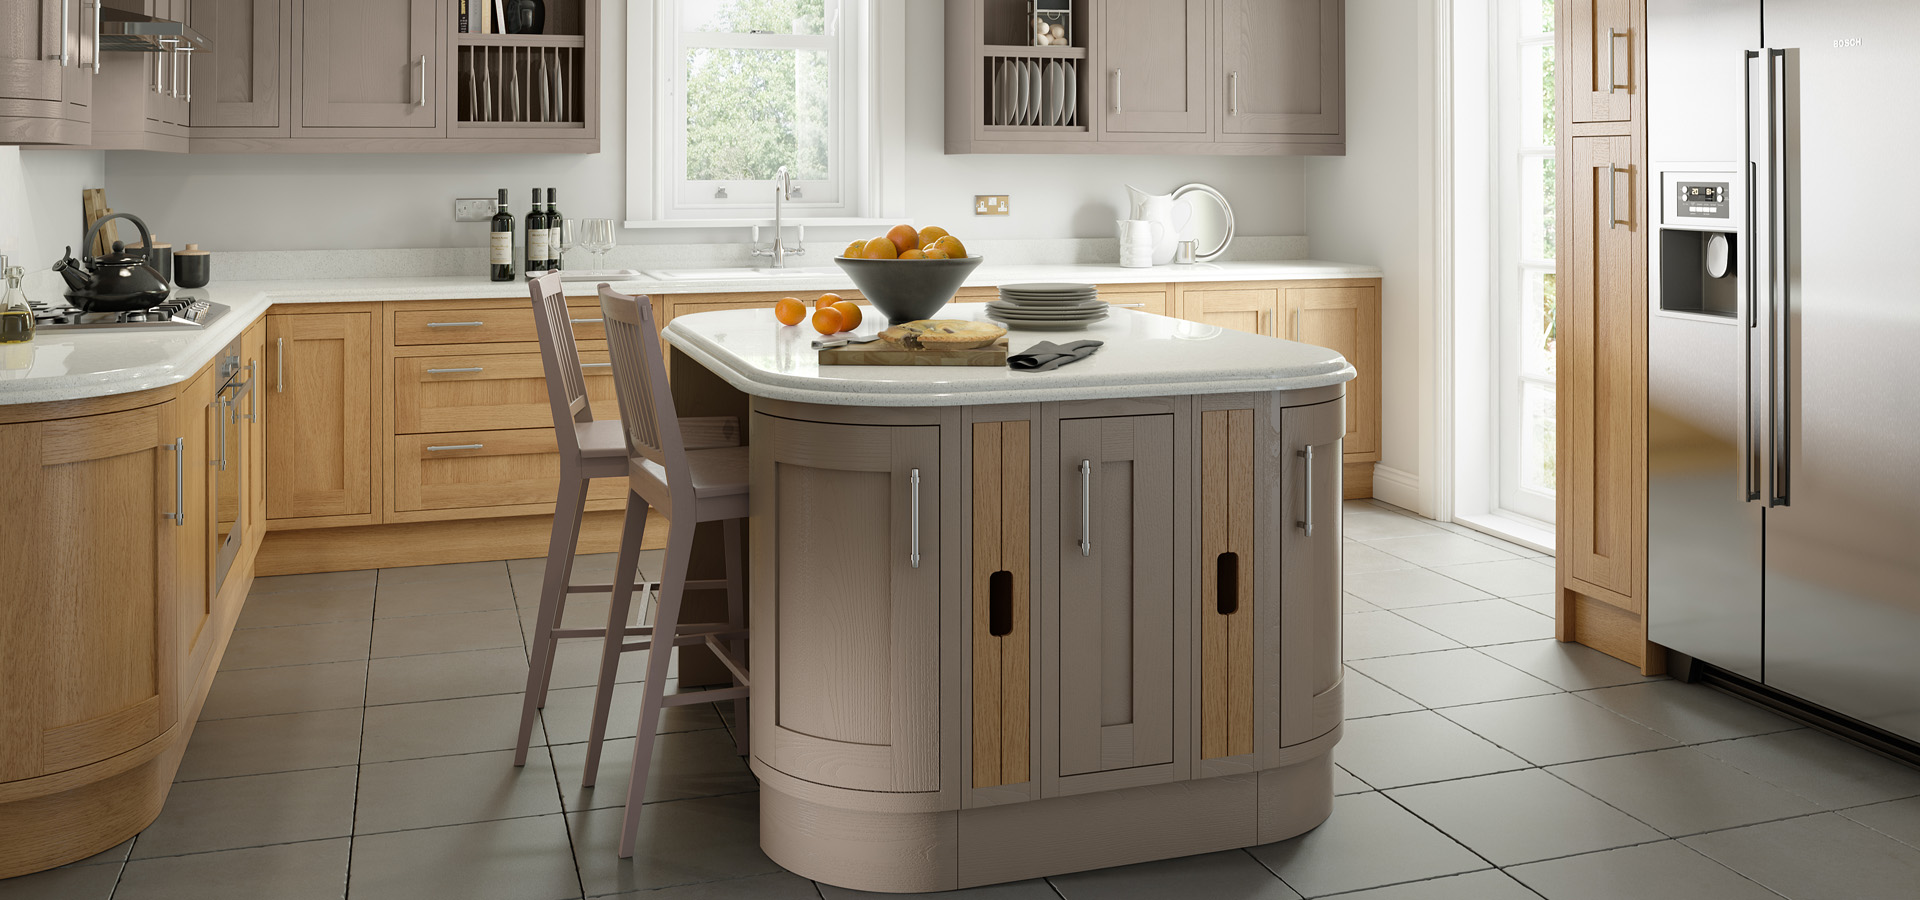 Country Painted Kitchen - Chippendale Kitchens   Supplied and Installed by Kingsbury Kitchens